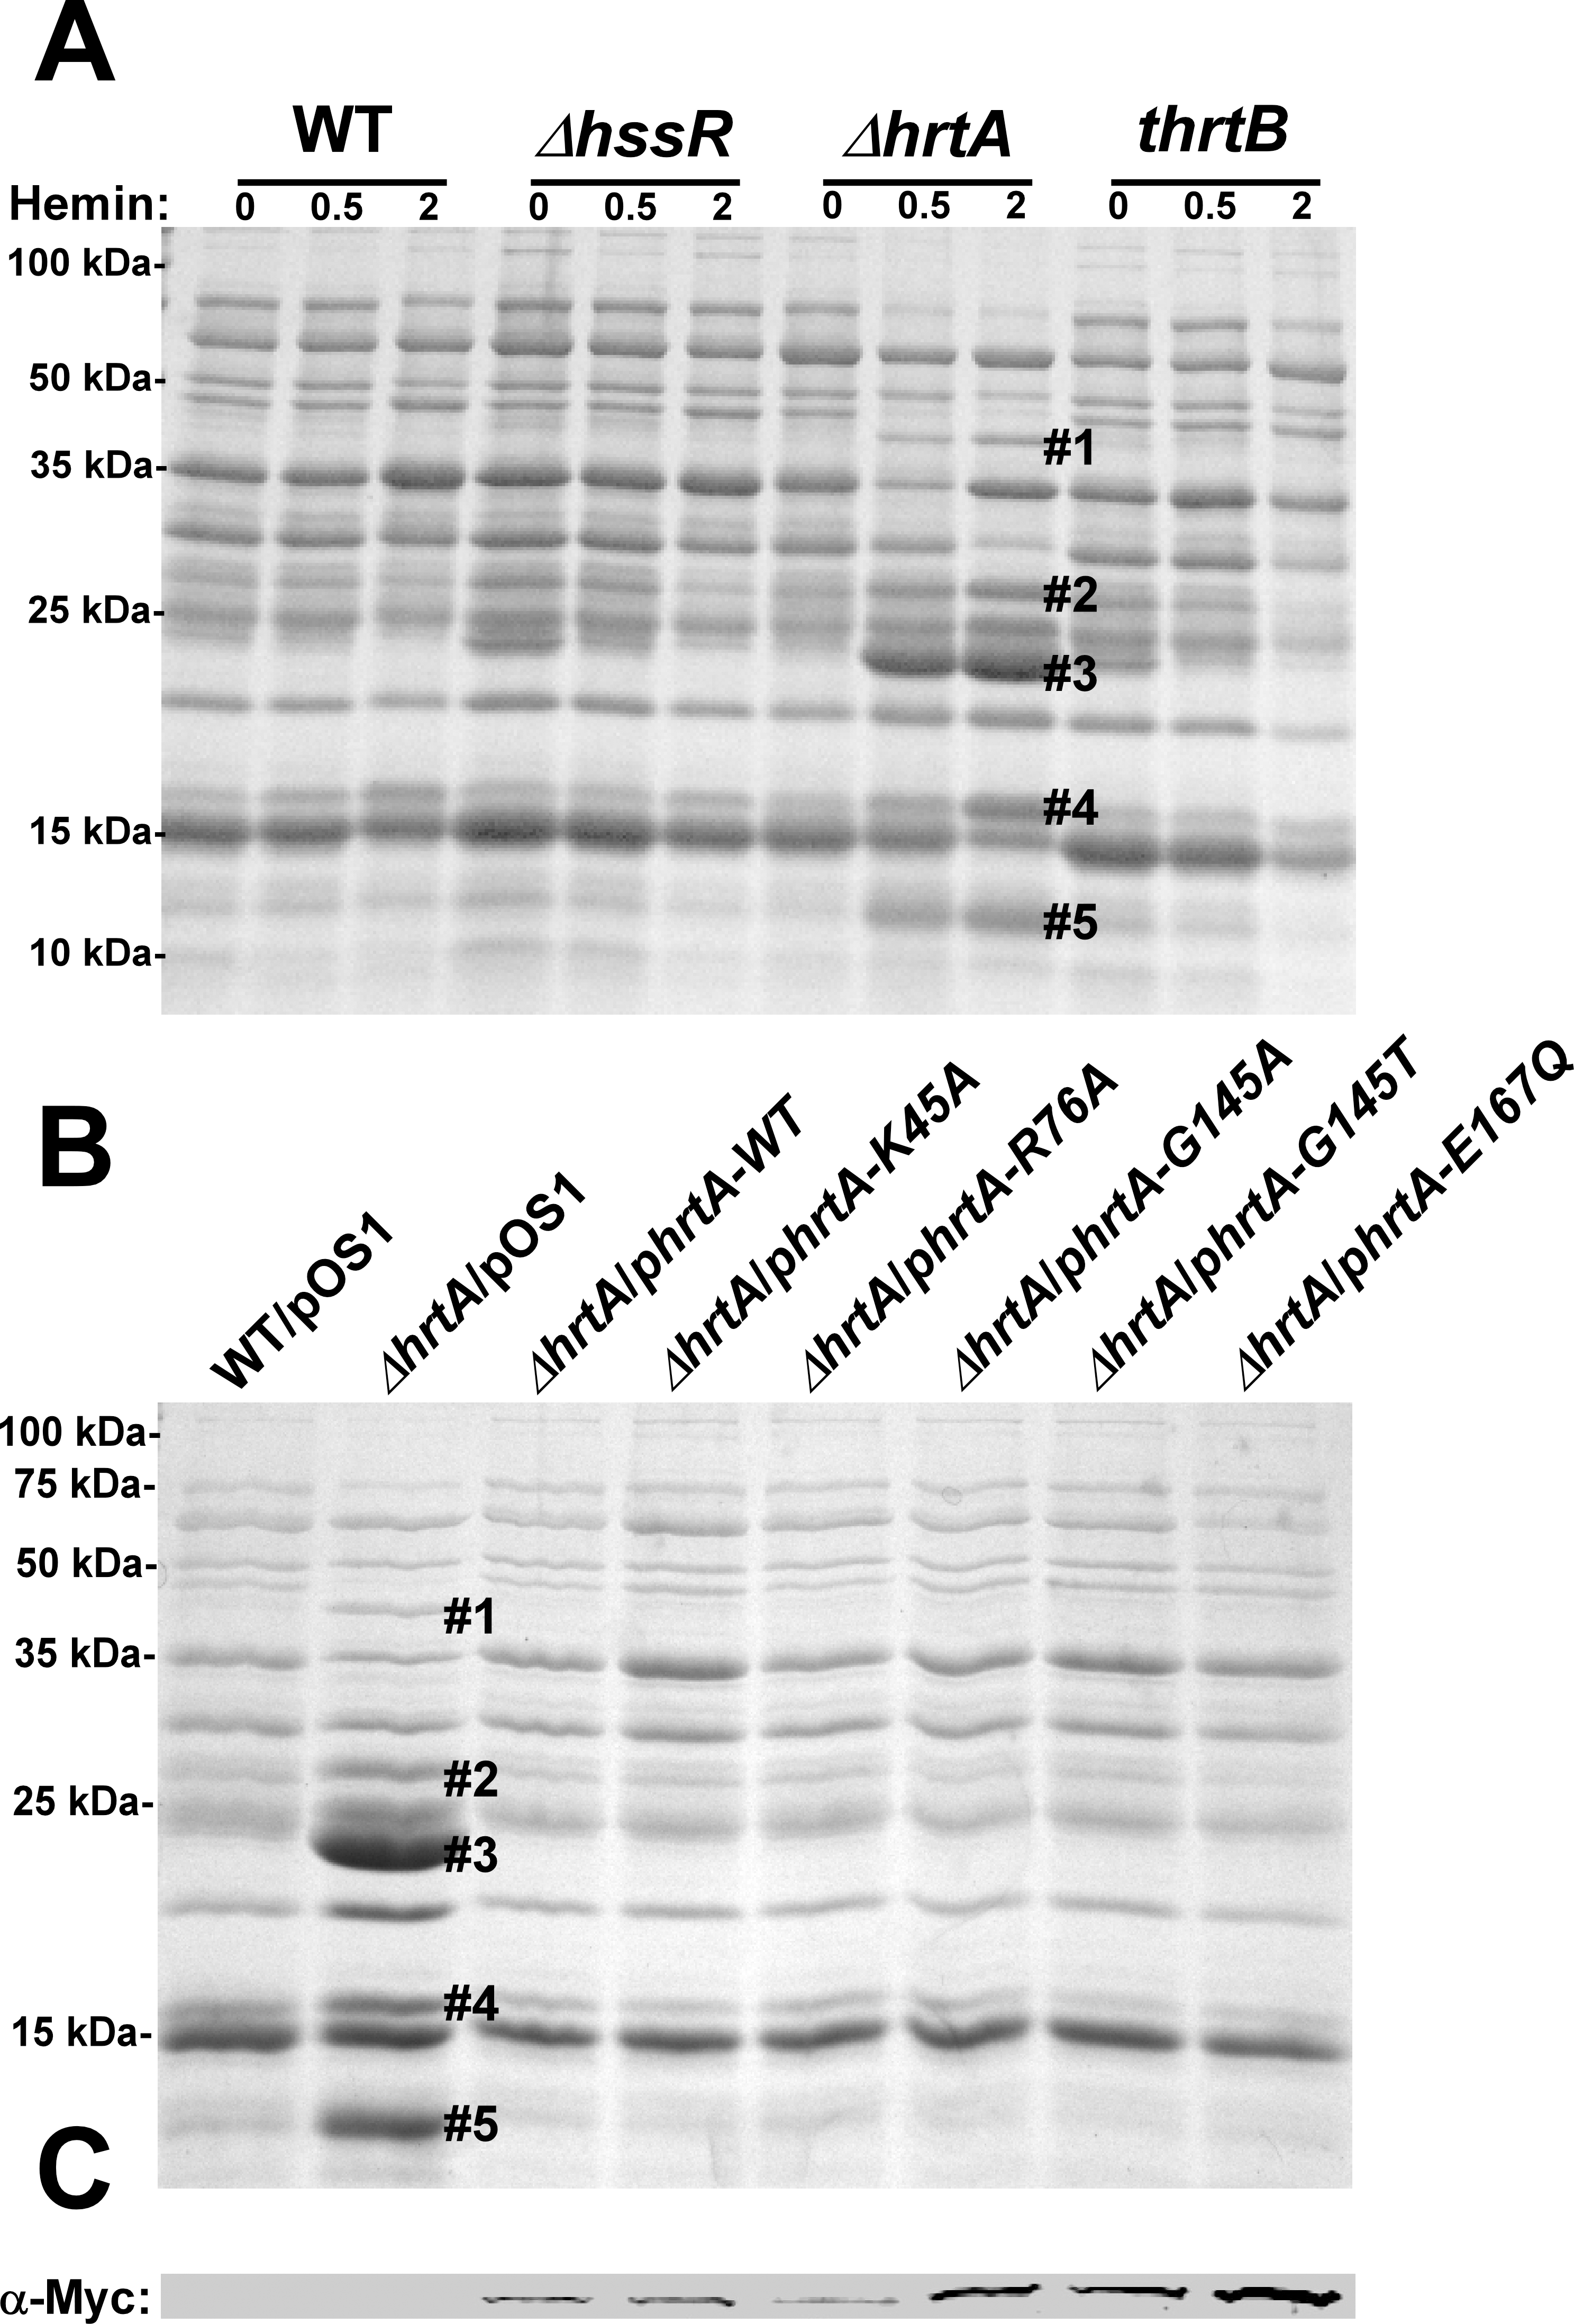 Up-regulation of immunomodulatory proteins is caused by loss of expression of HrtA.